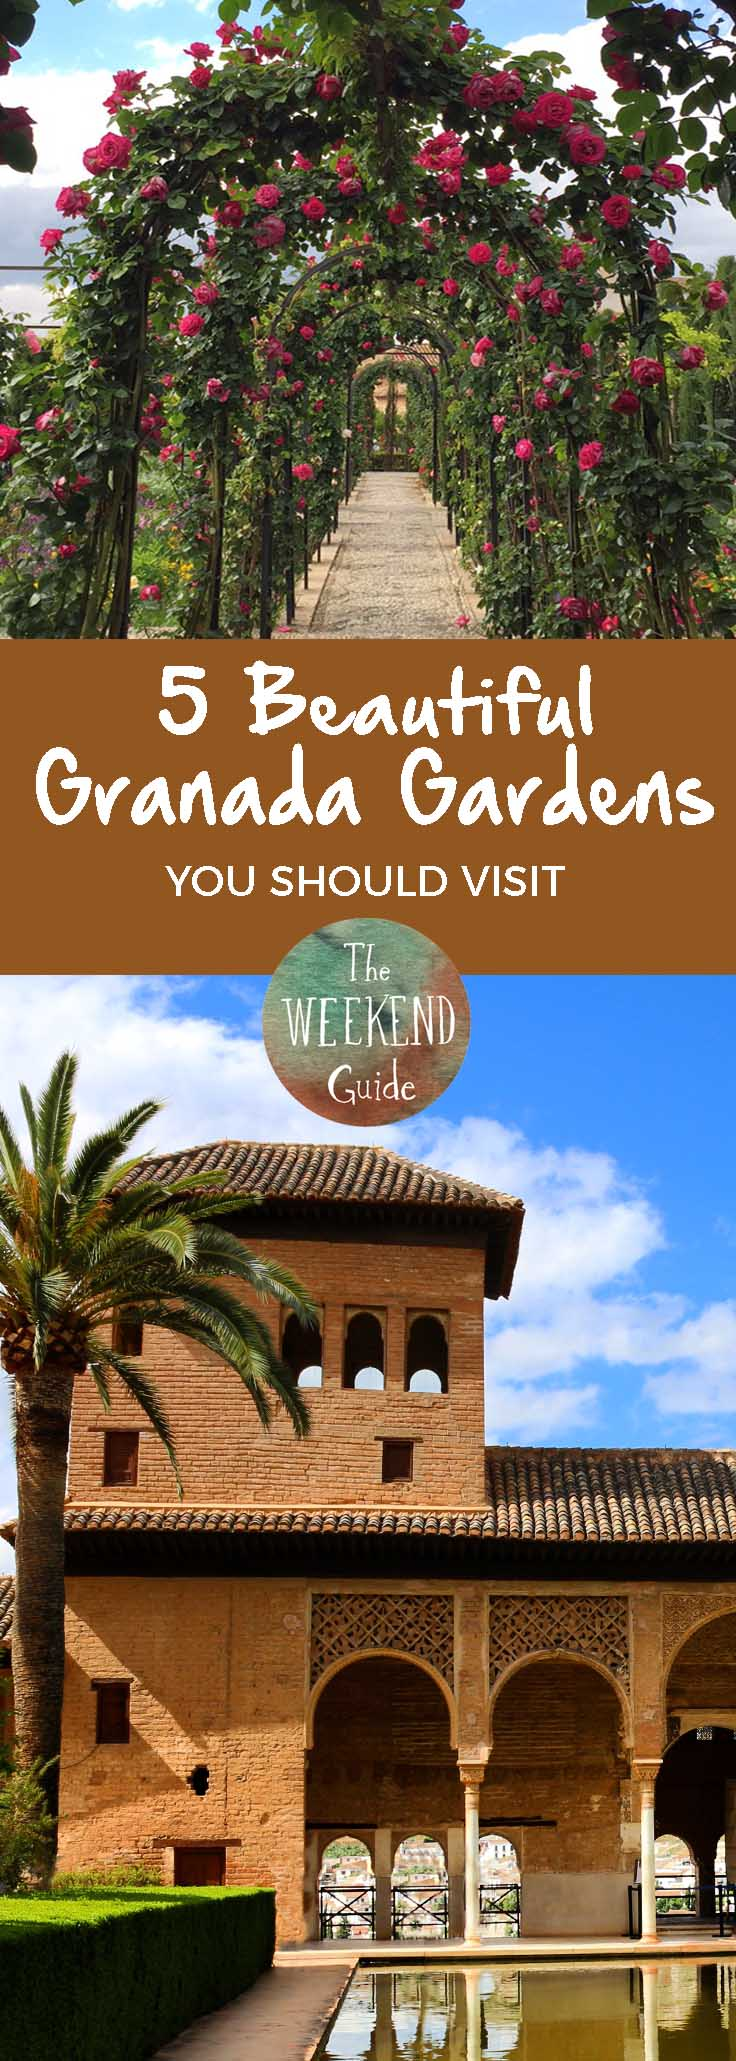 Granada is famous for the Alhambra, but there are other beautiful places you should visit. Here are five of our favorite parks and gardens in Granada. - theweekendguide.com